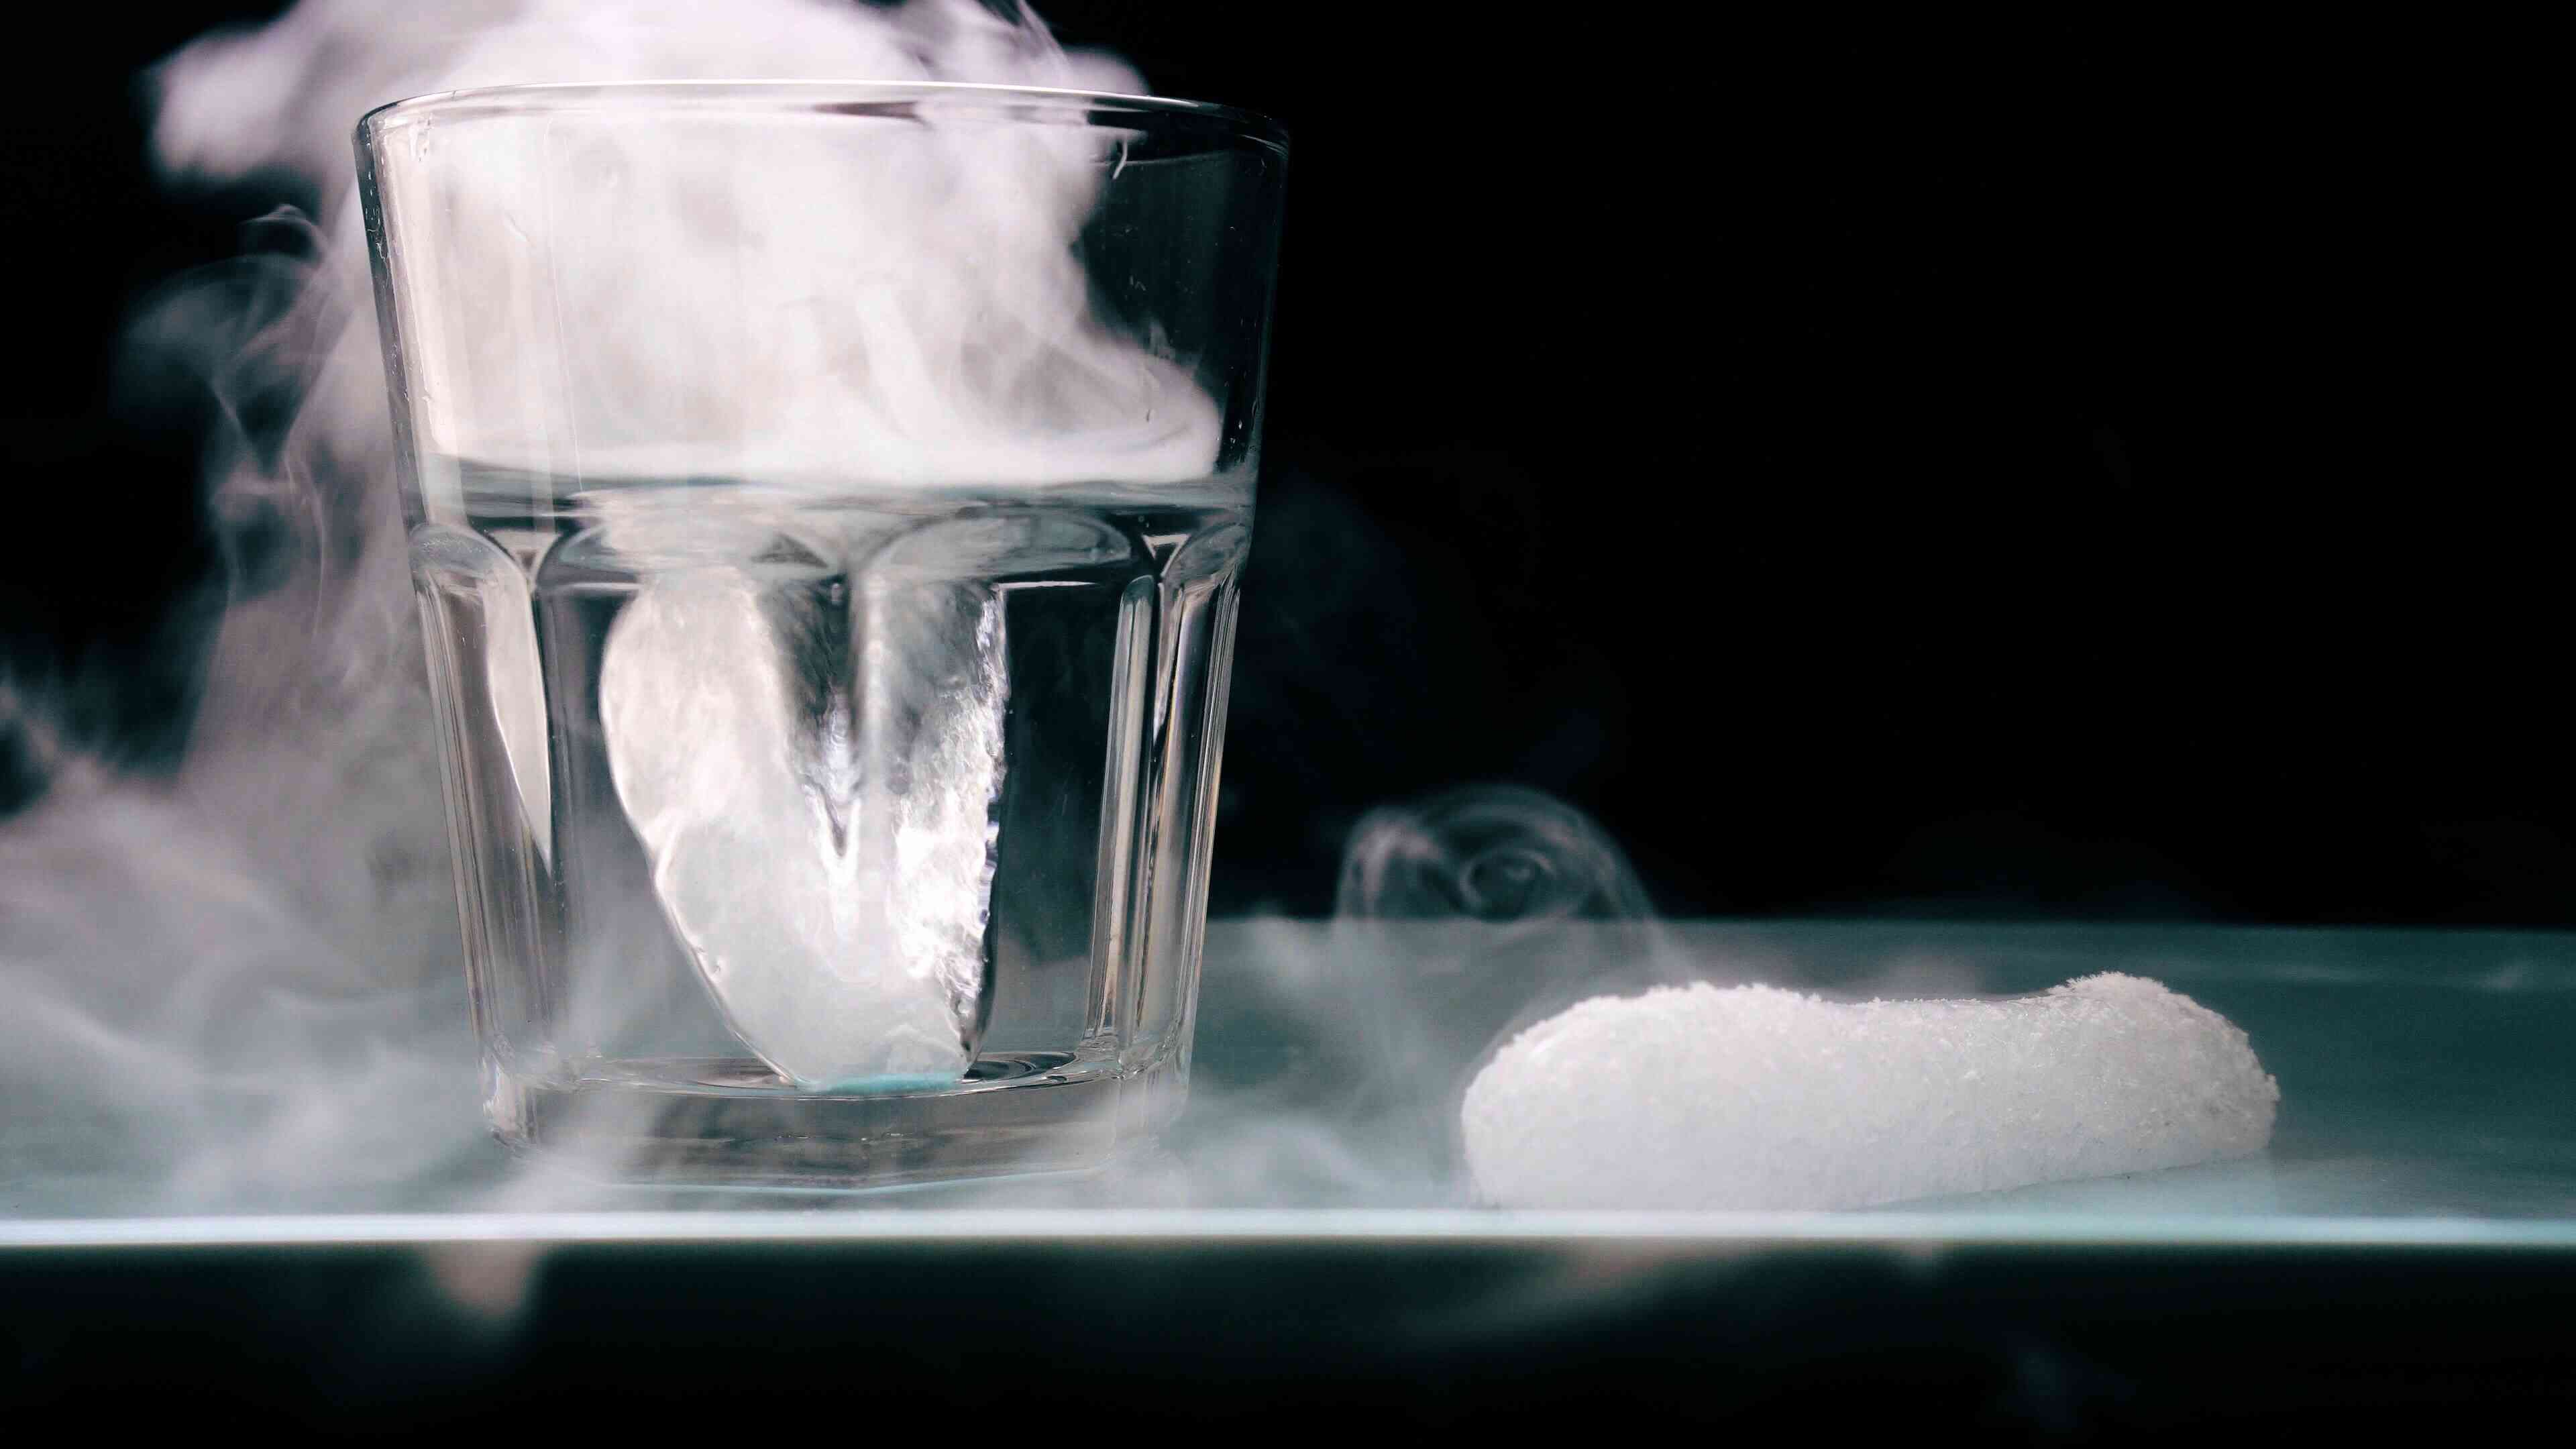 Dry ice is the name for solid carbon dioxide.